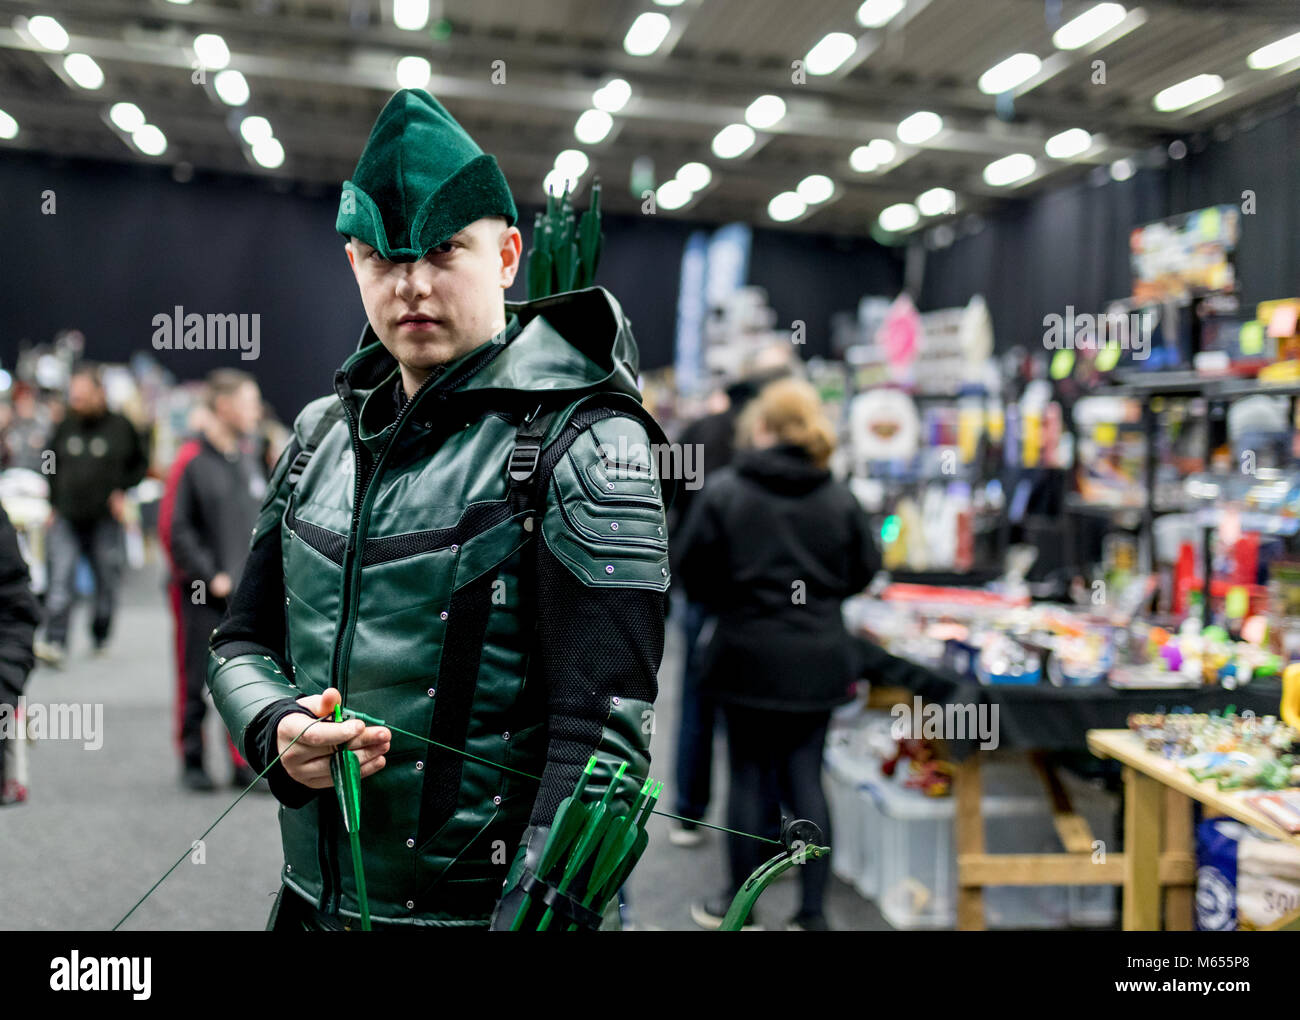 Doncaster Comic Con 11th Feruary 2018 at The Doncaster Dome. Man dressed as Arrow from DCs Green Arrow TV series - Stock Image